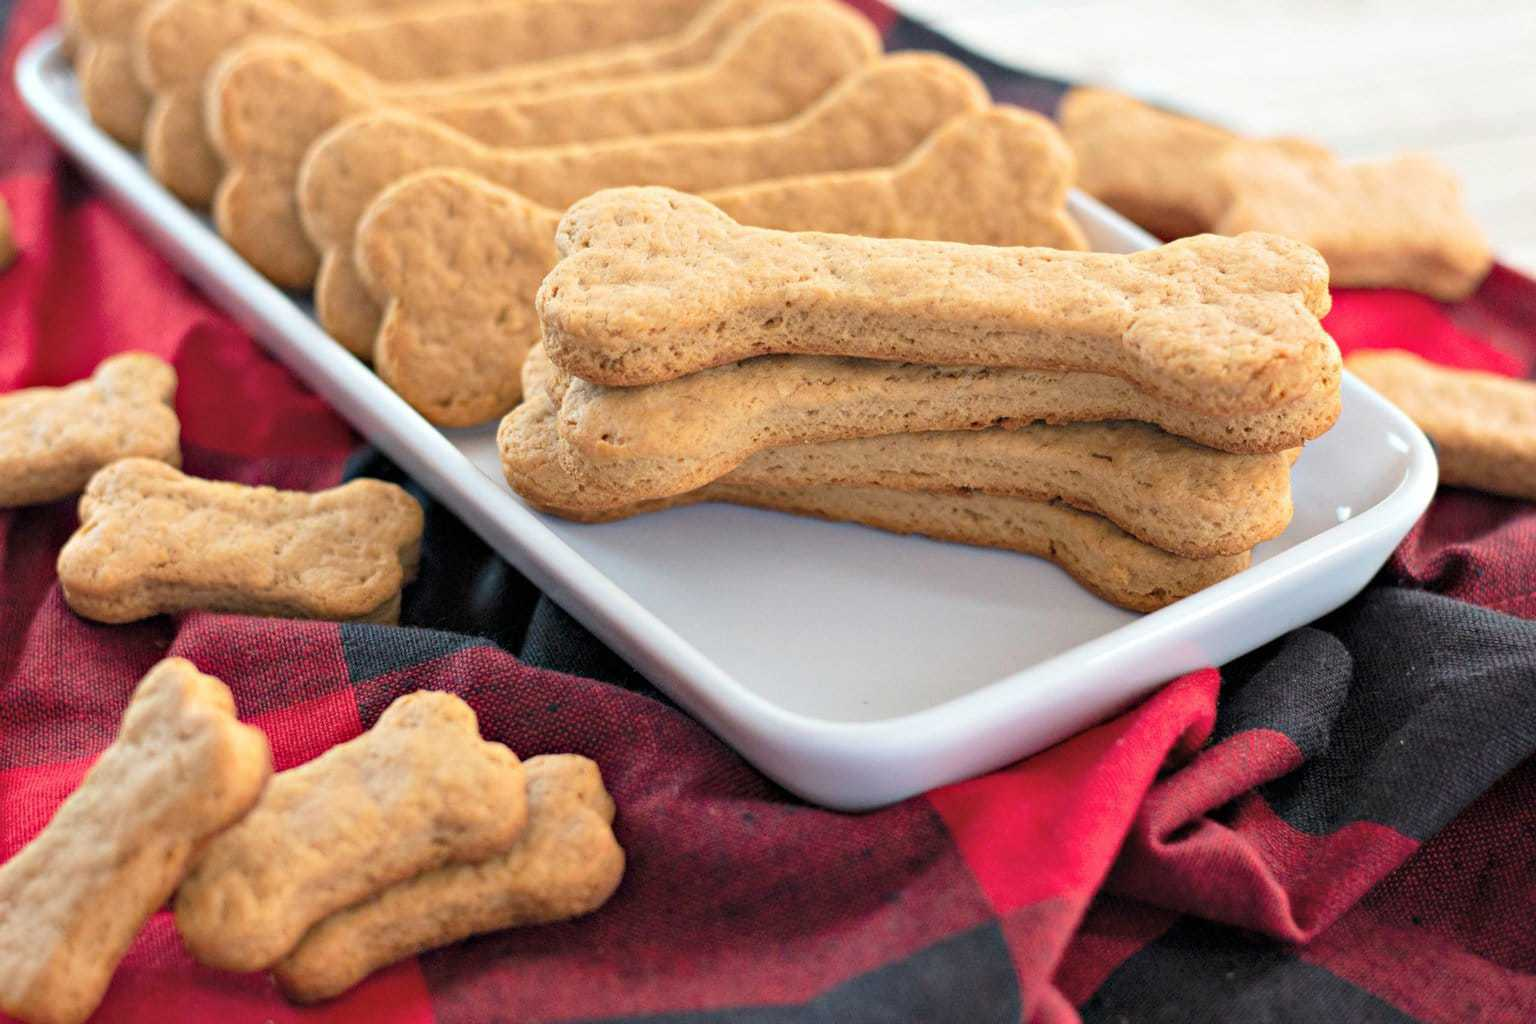 How to Make Homemade Dog Treats With